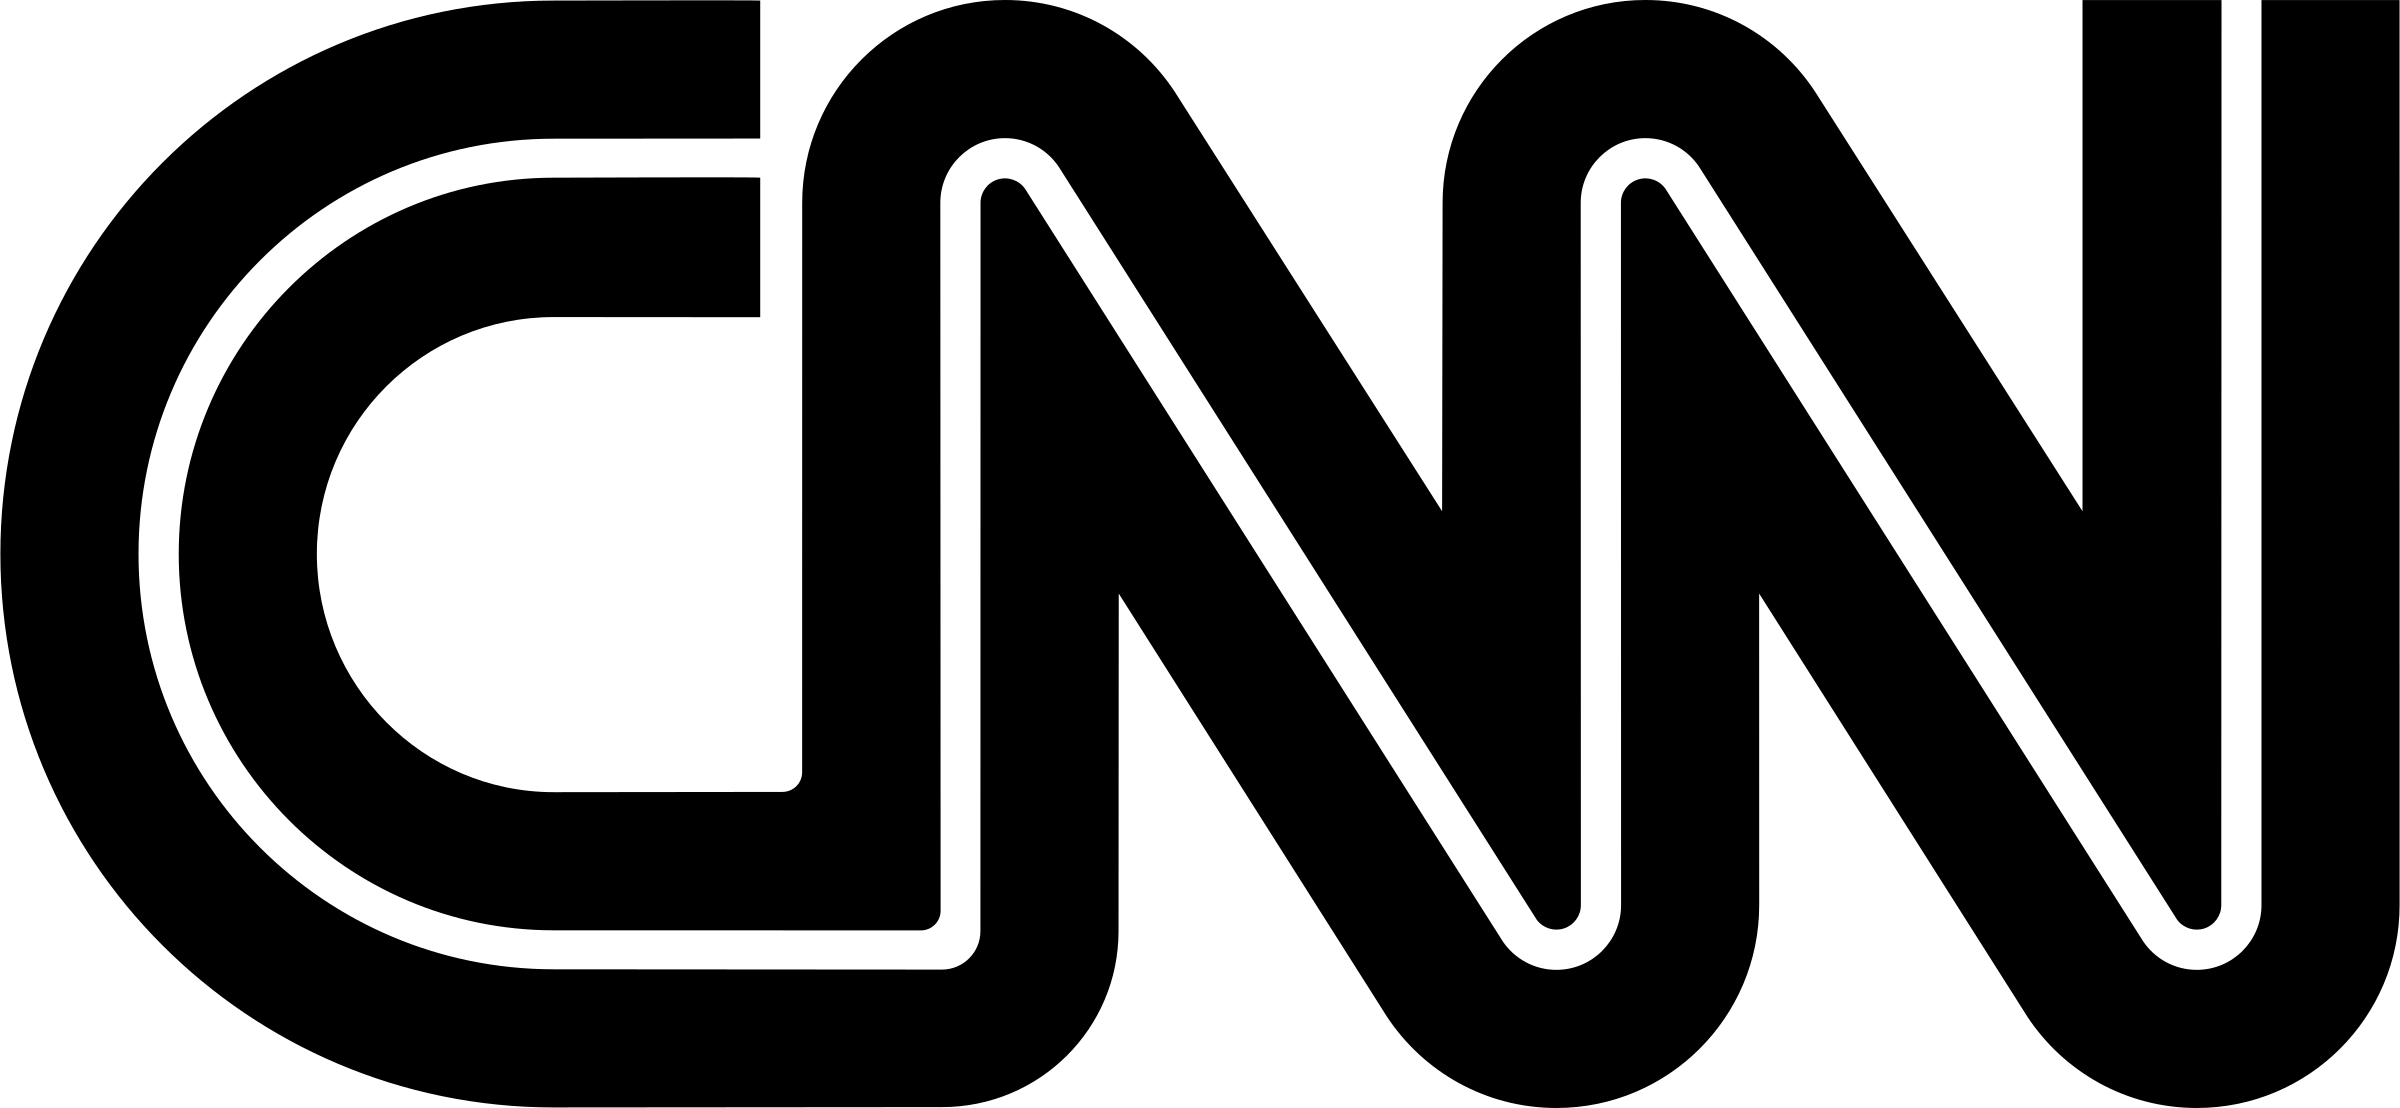 cnn-logo-logo-png-transparent final.png